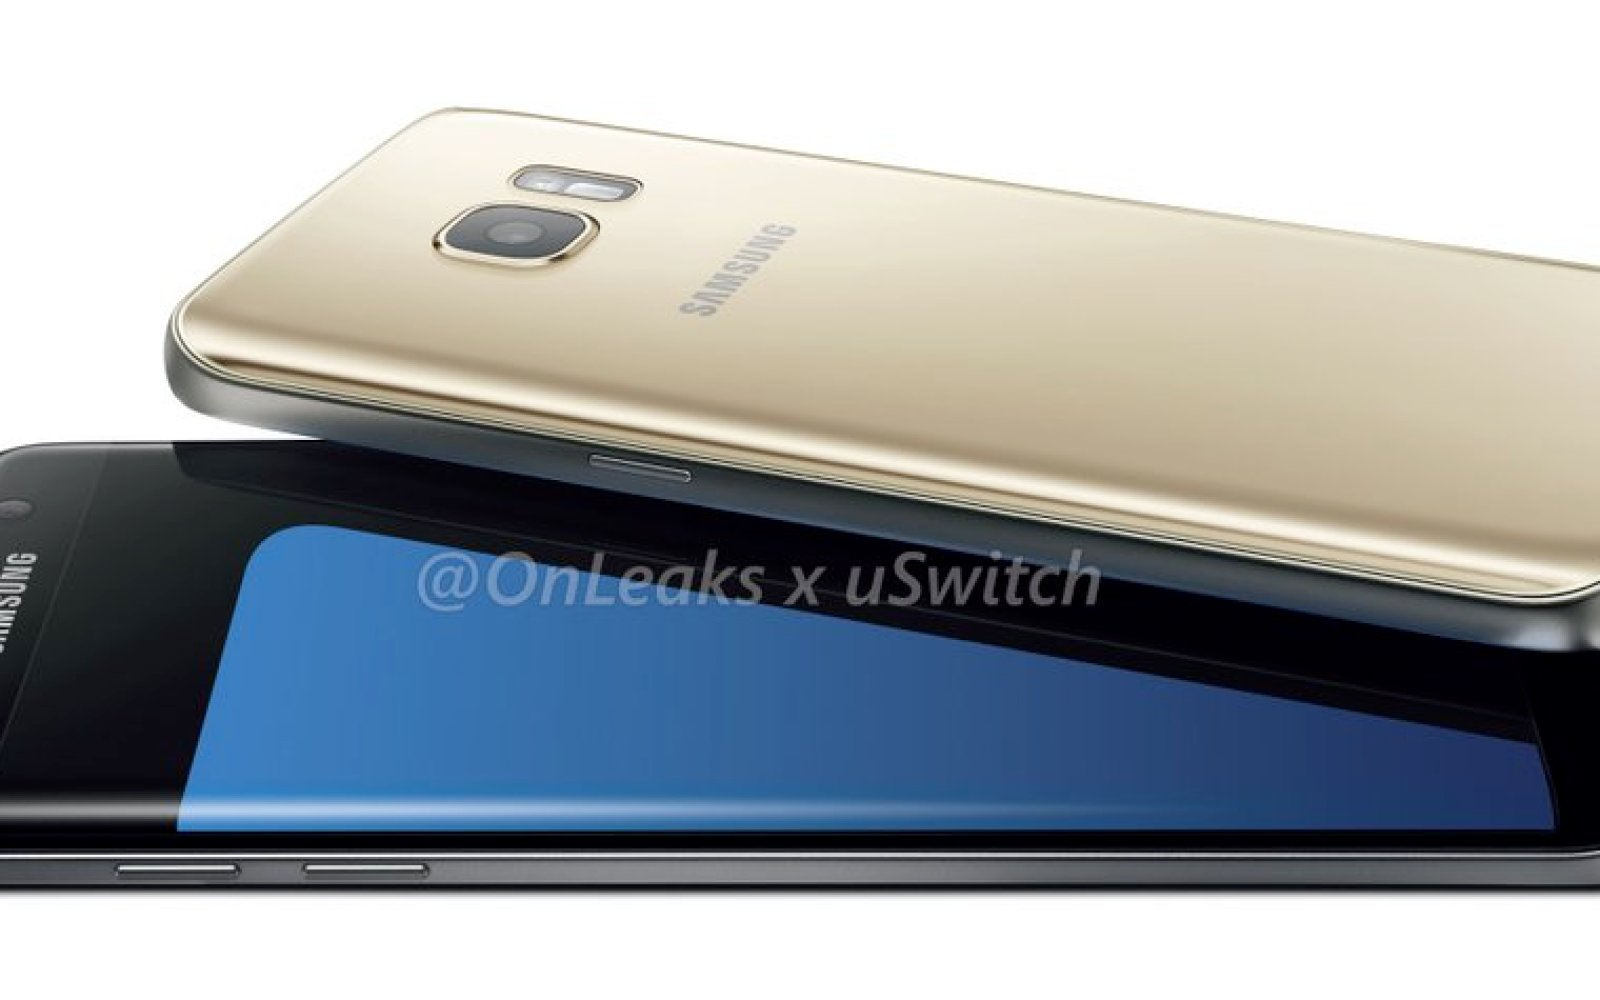 New images show every Galaxy S7 and S7 Edge variant from just about every angle [Gallery]